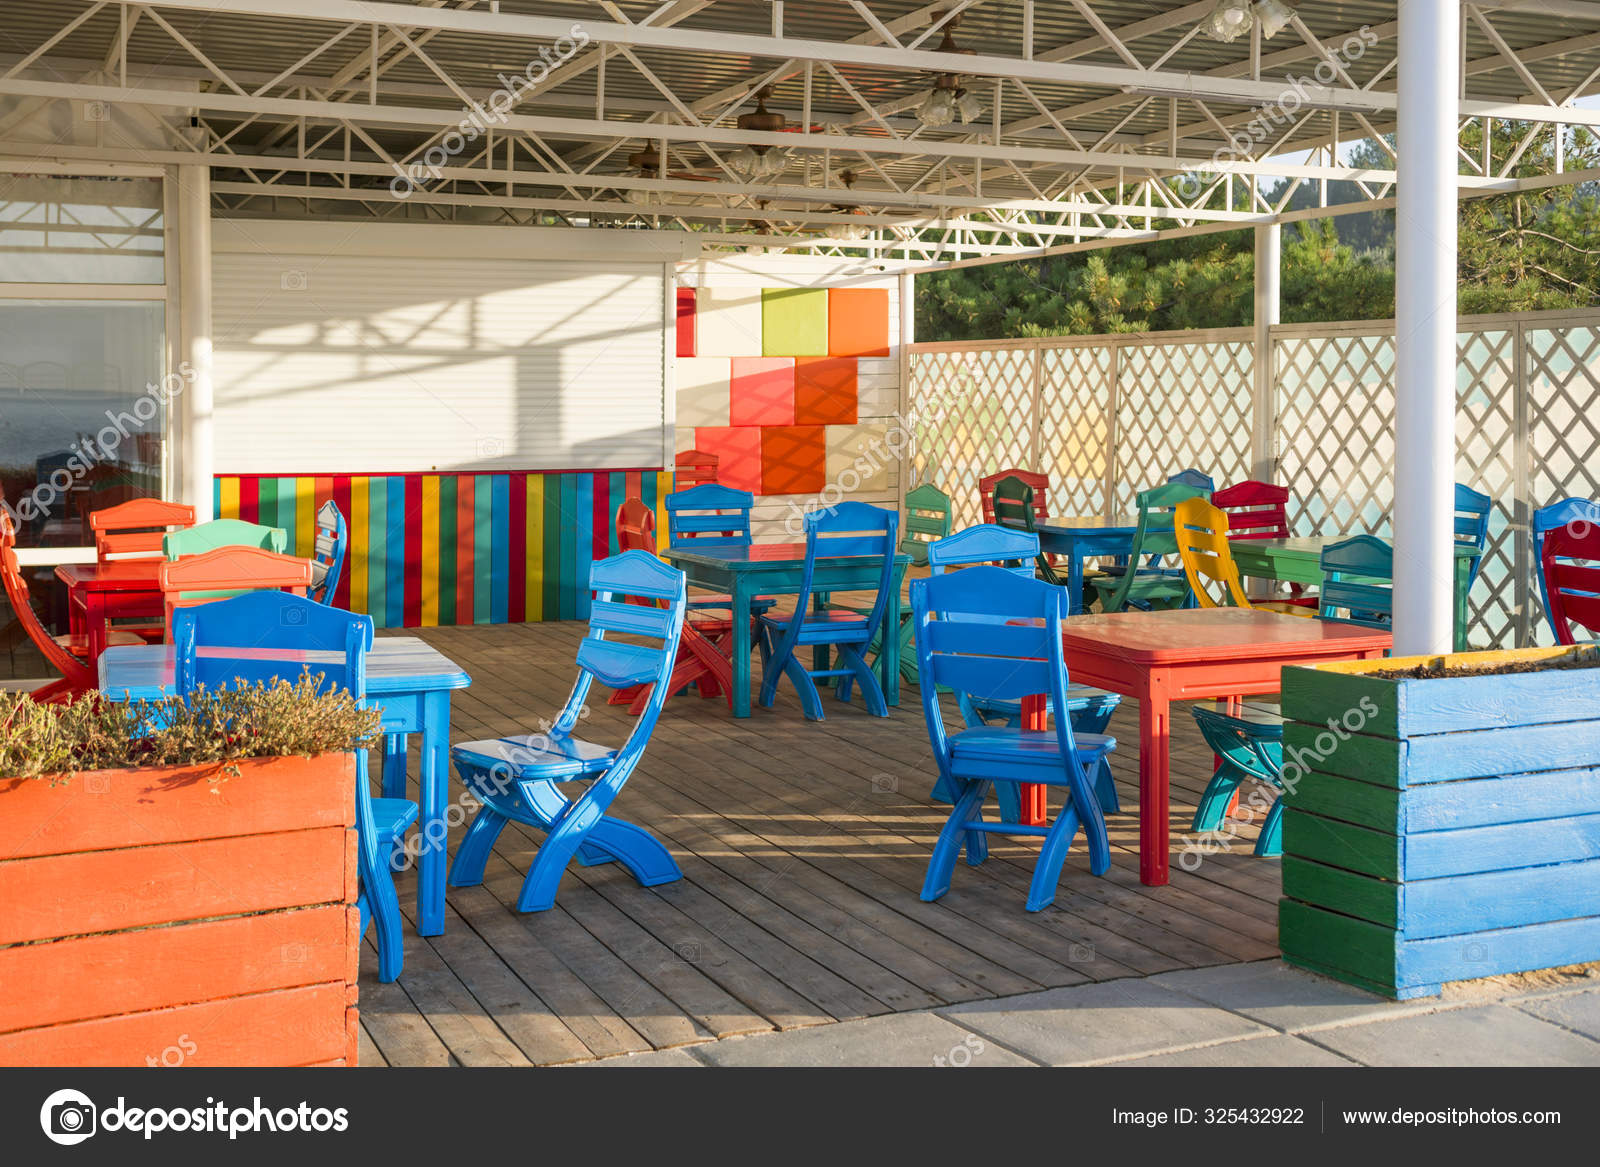 Beach Cafe With Colorful Chairs Colorful Terrace At Modern Restaurant In Fancy Colors Stock Photo C Spyrakot 325432922